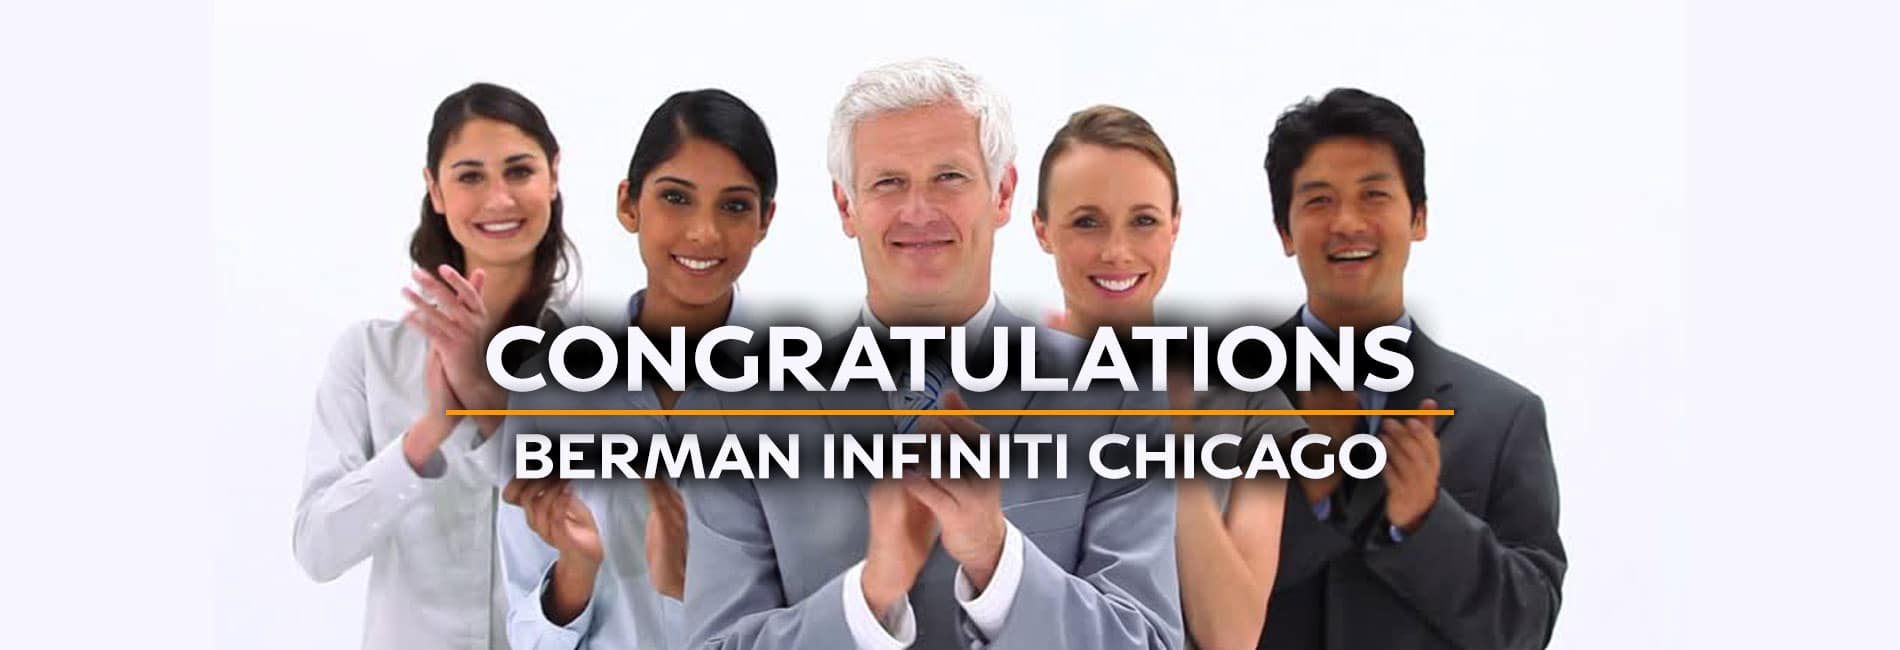 Congratulations from Berman INFINITI Chicago